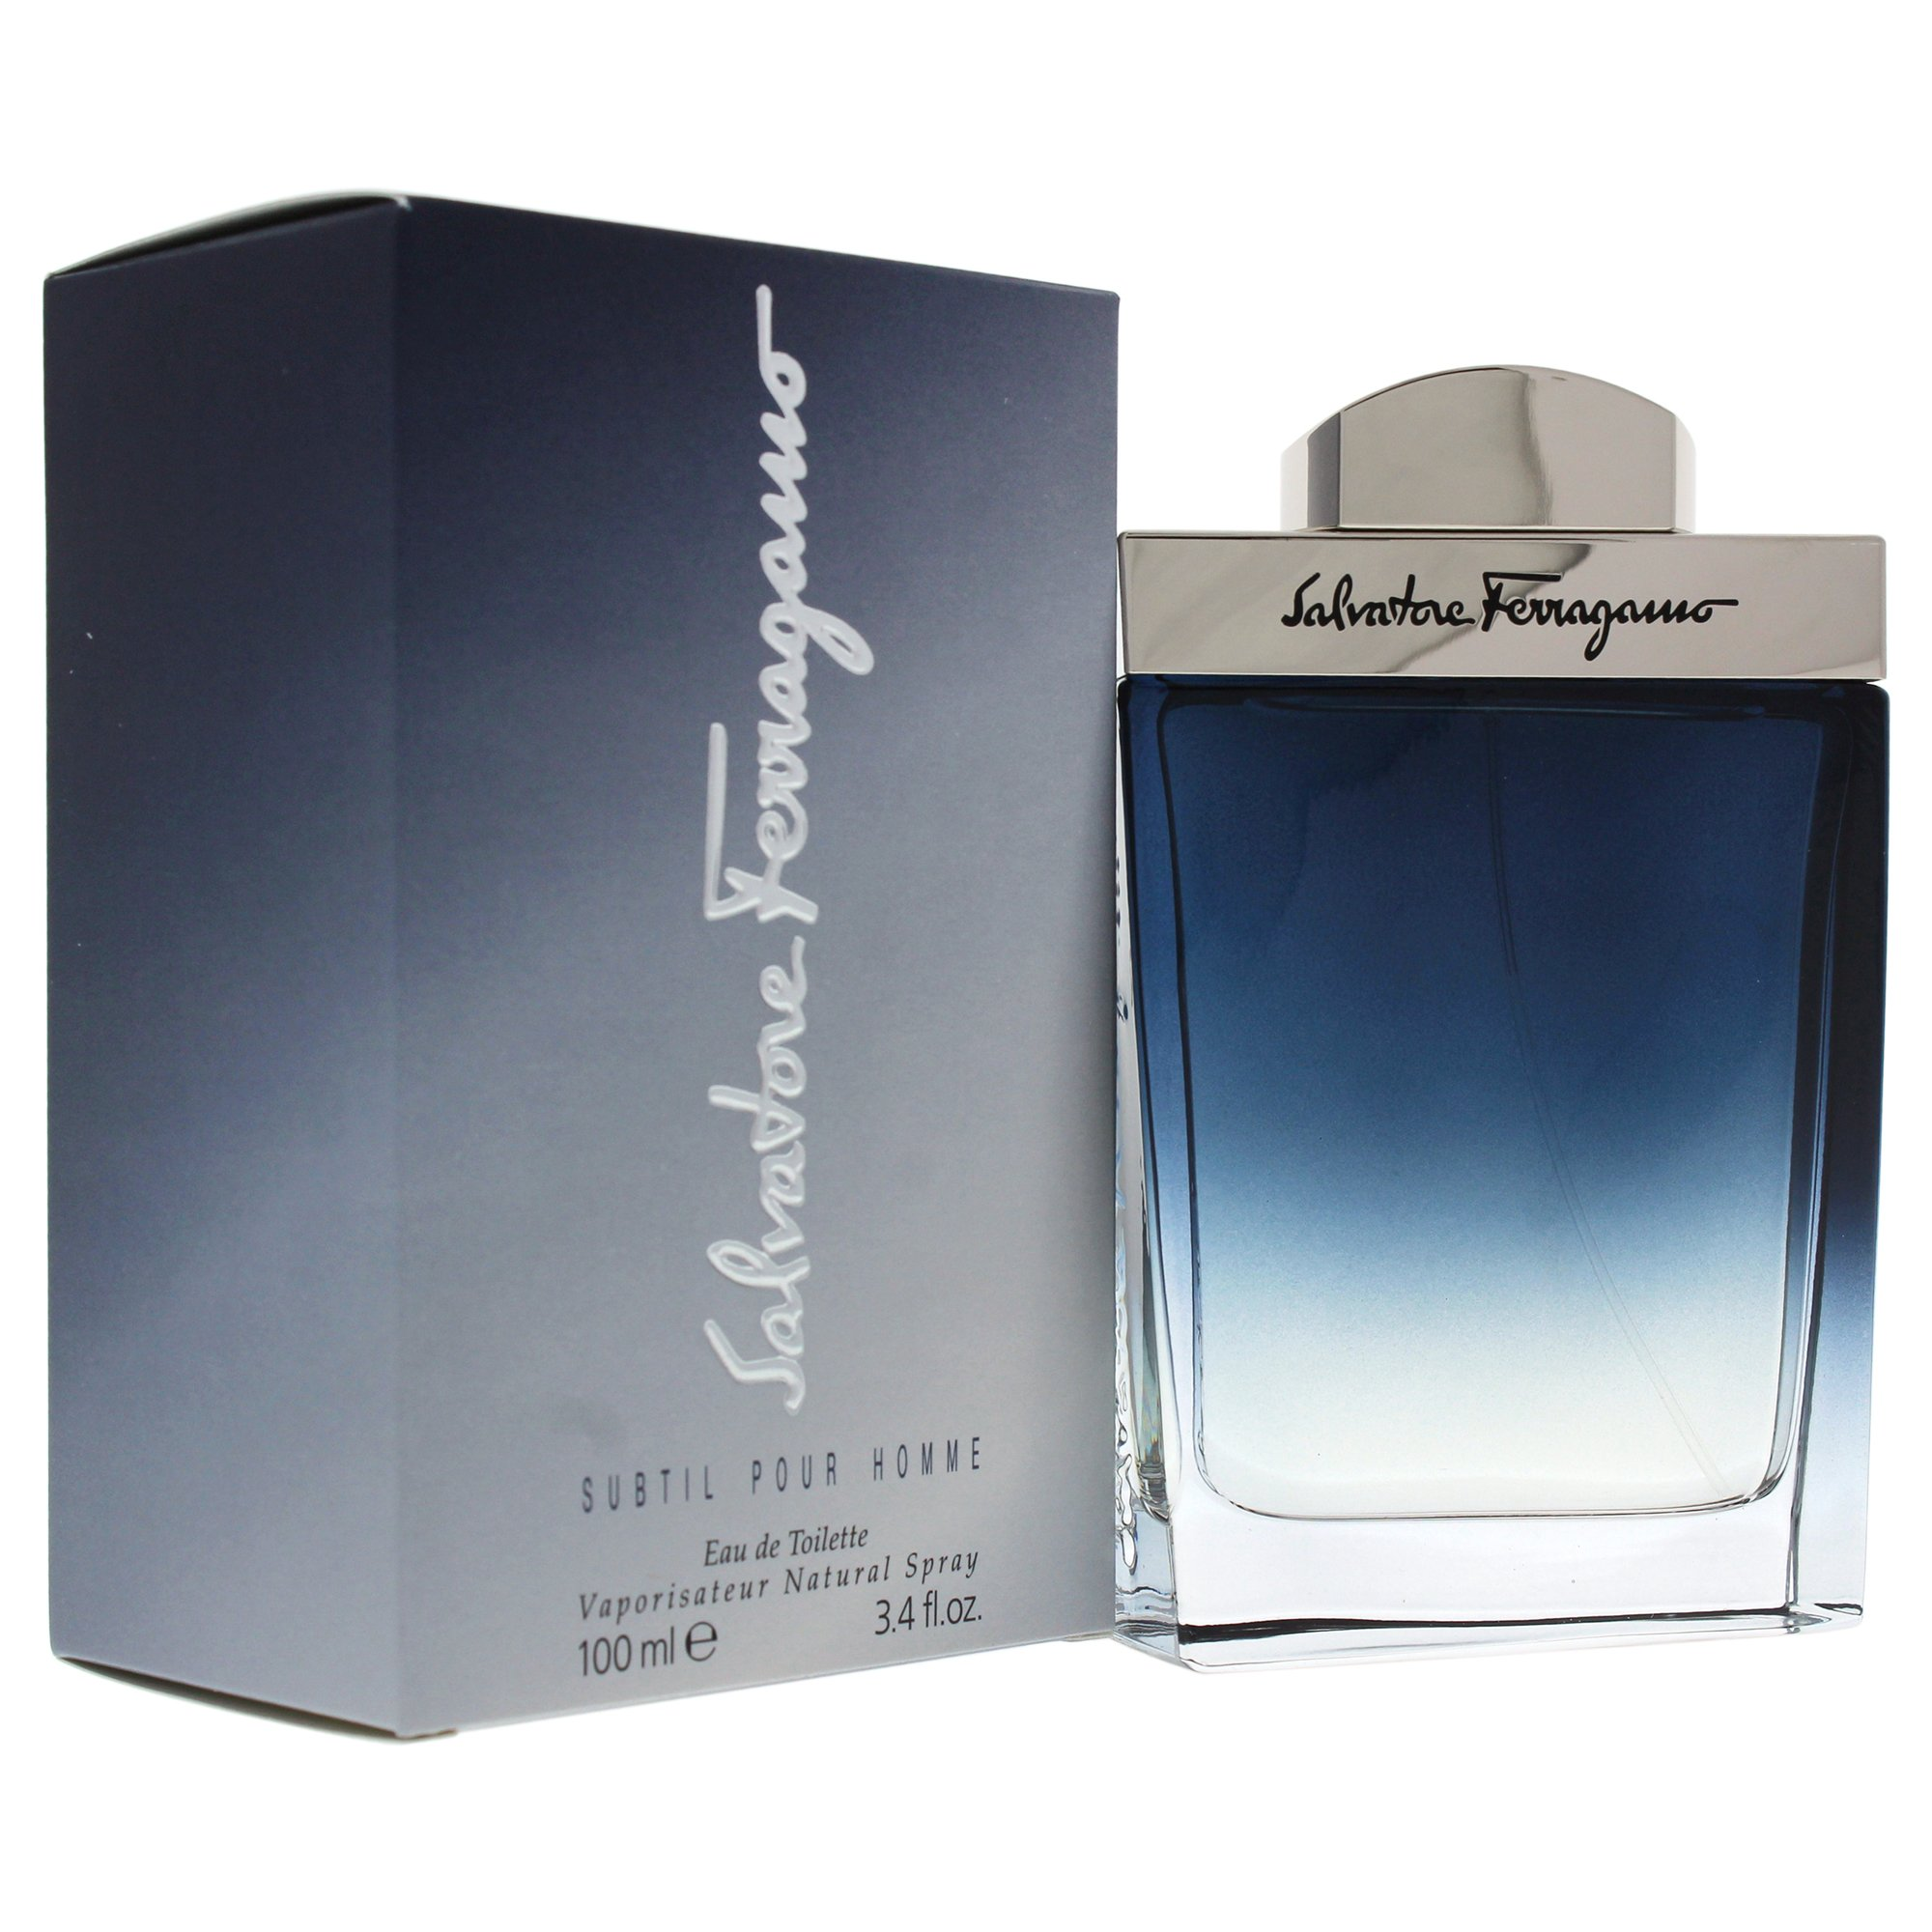 62ea04e519c30 Amazon.com   Salvatore Ferragamo By Salvatore Ferragamo For Women ...